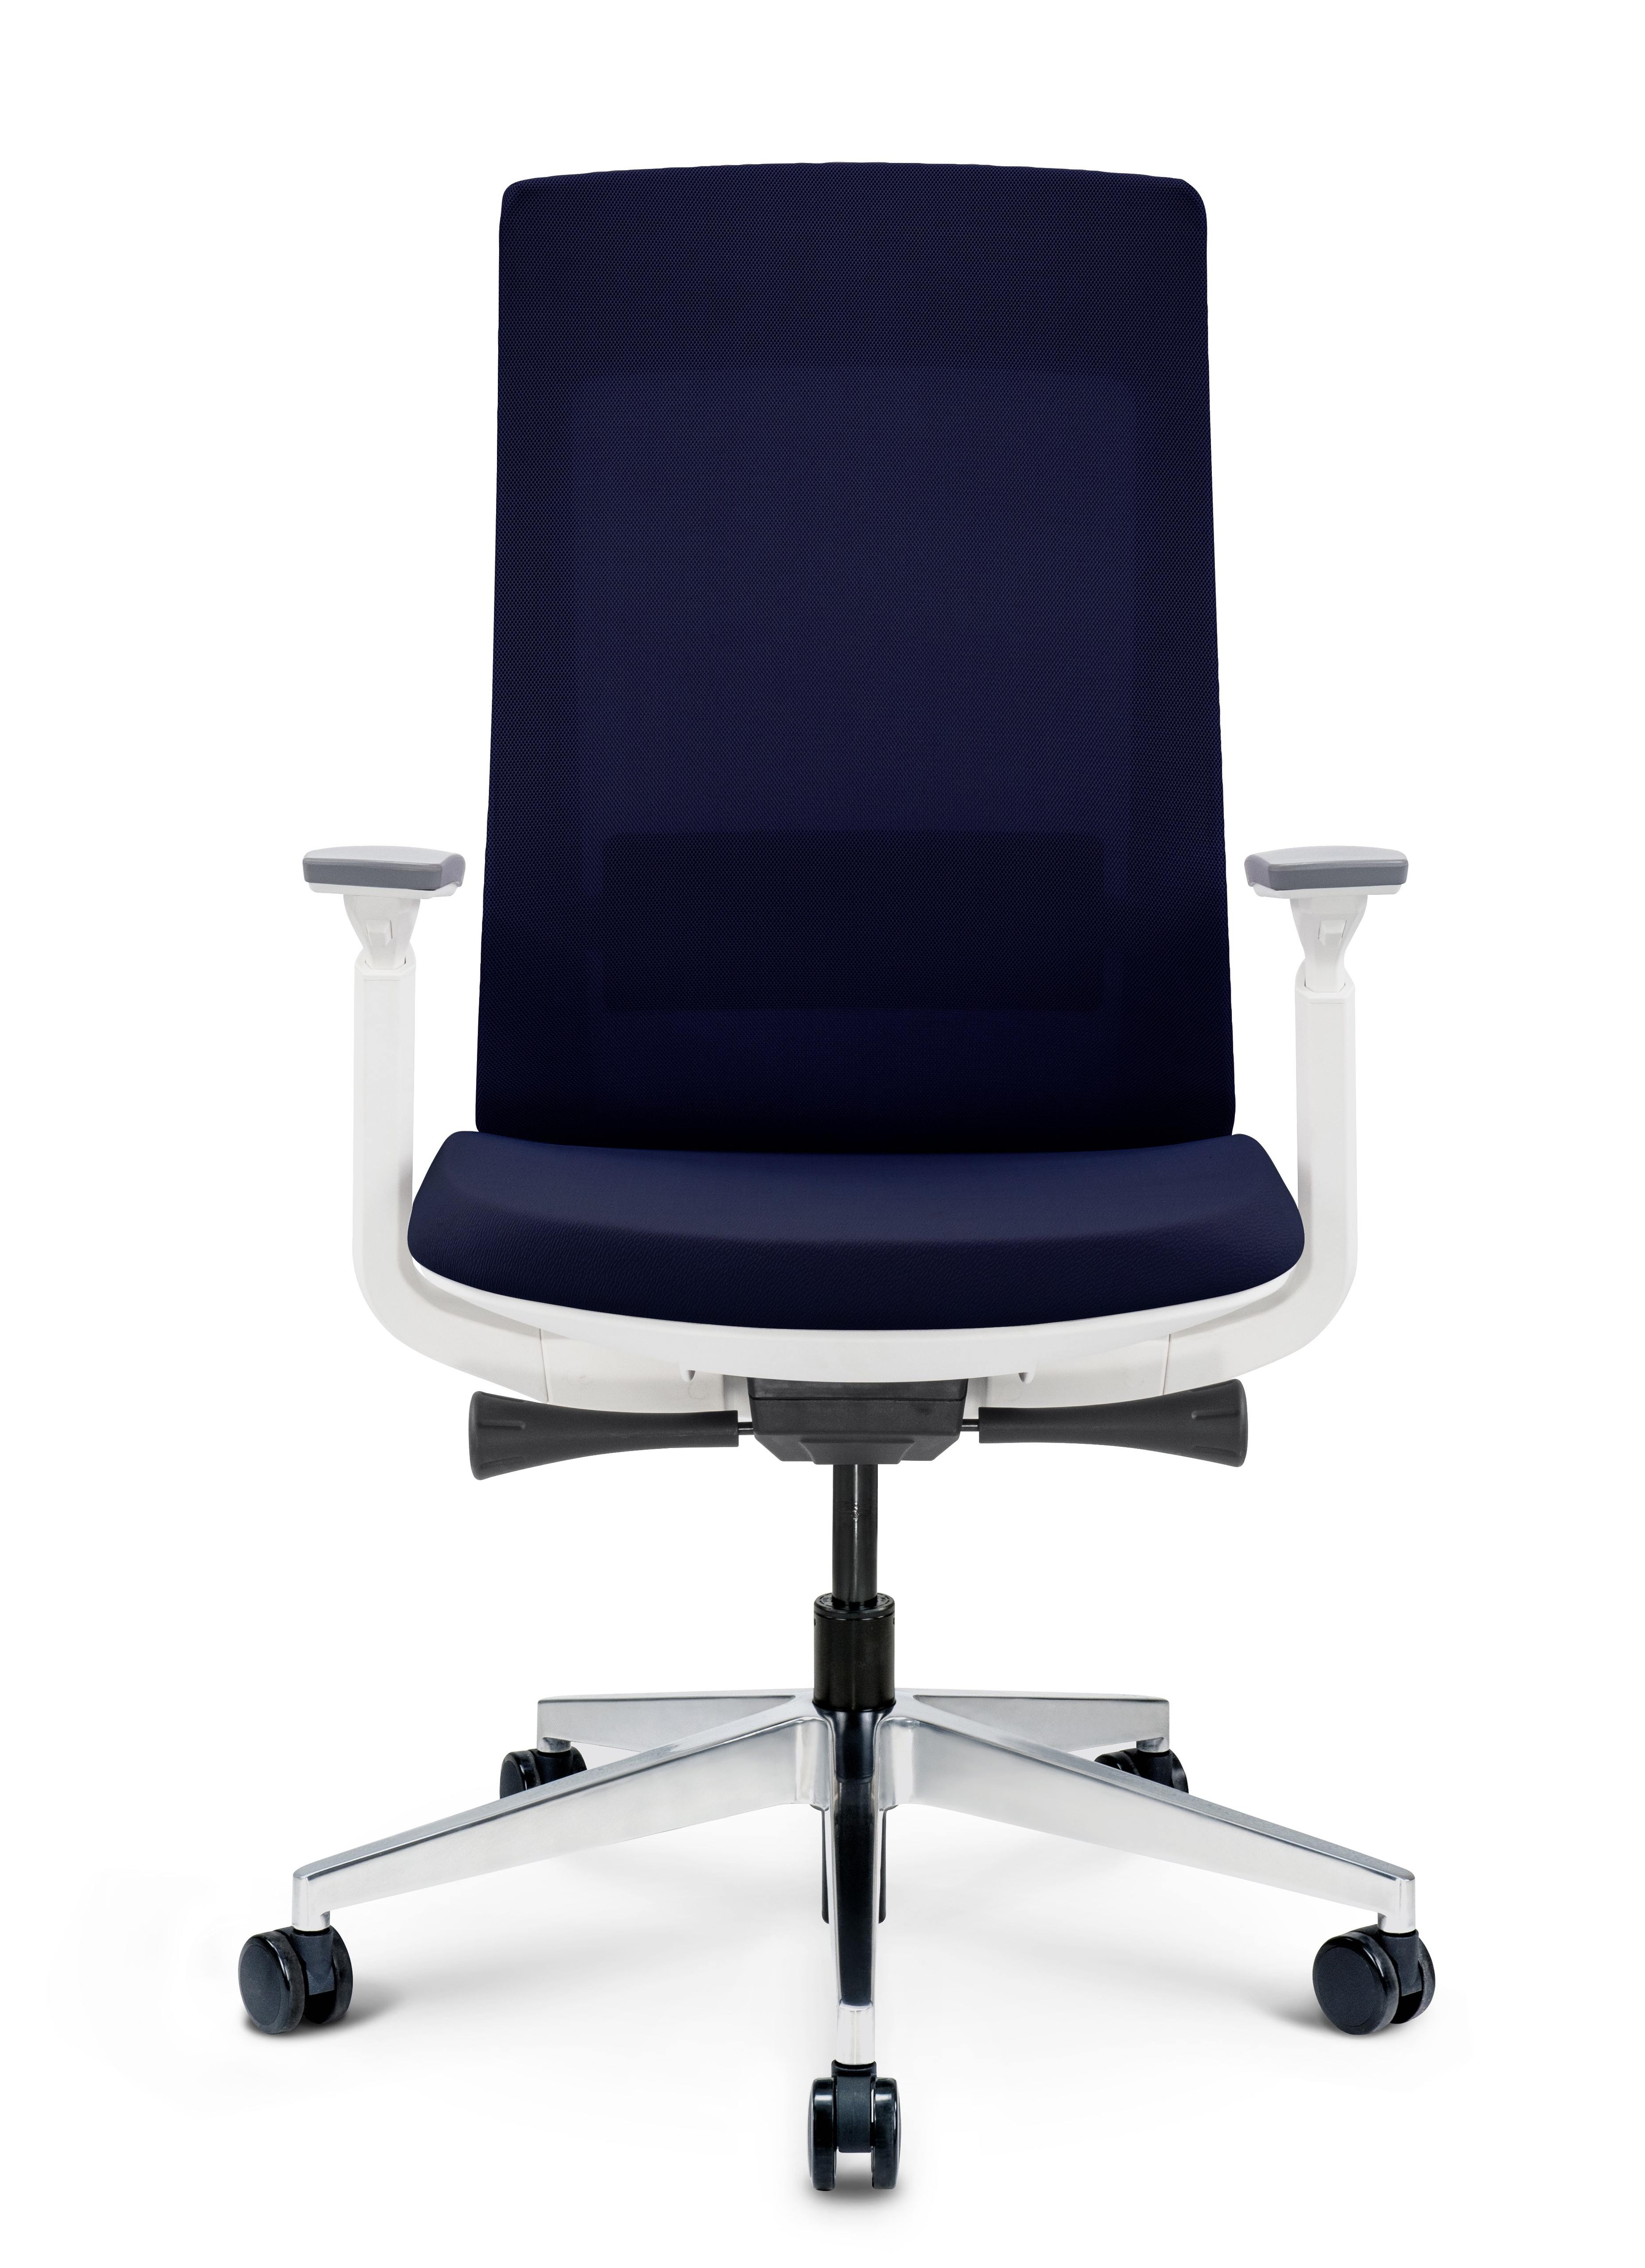 blue elevate chair